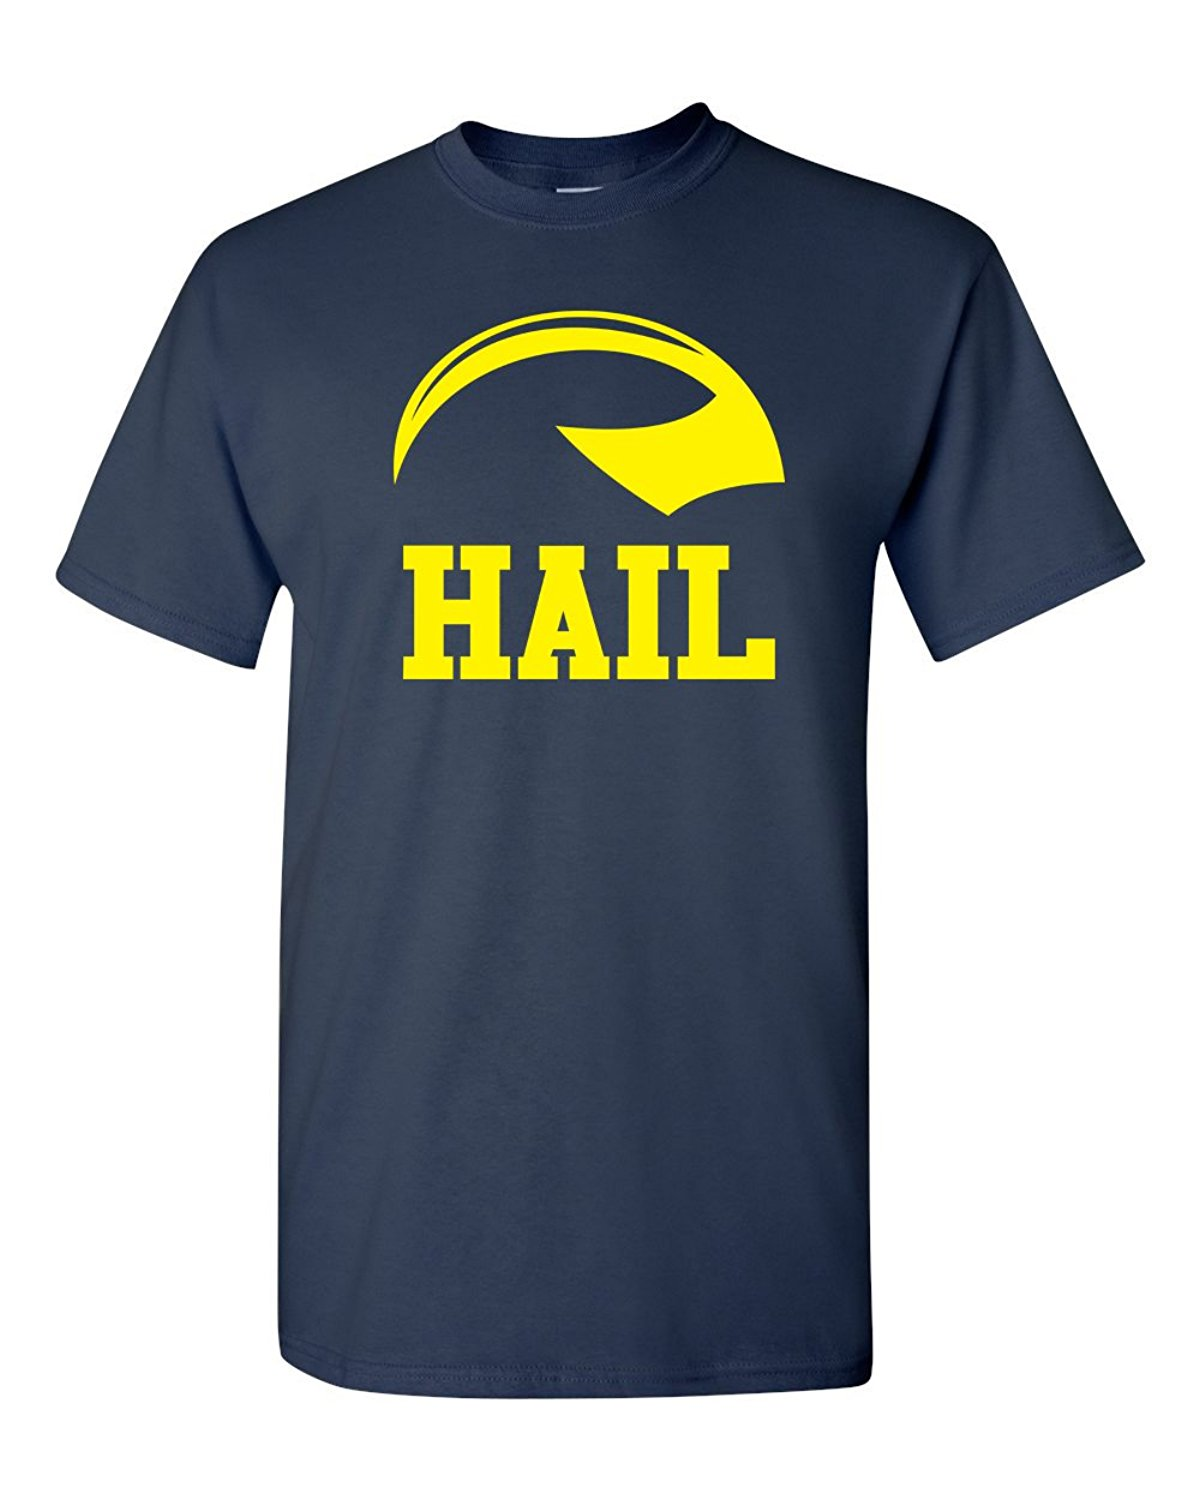 LEQEMAO Short Sleeve Round neck Top Tee Hail Michigan Footballer Helmet Mens T-Shirt - 5XL Navy (570) T shirt